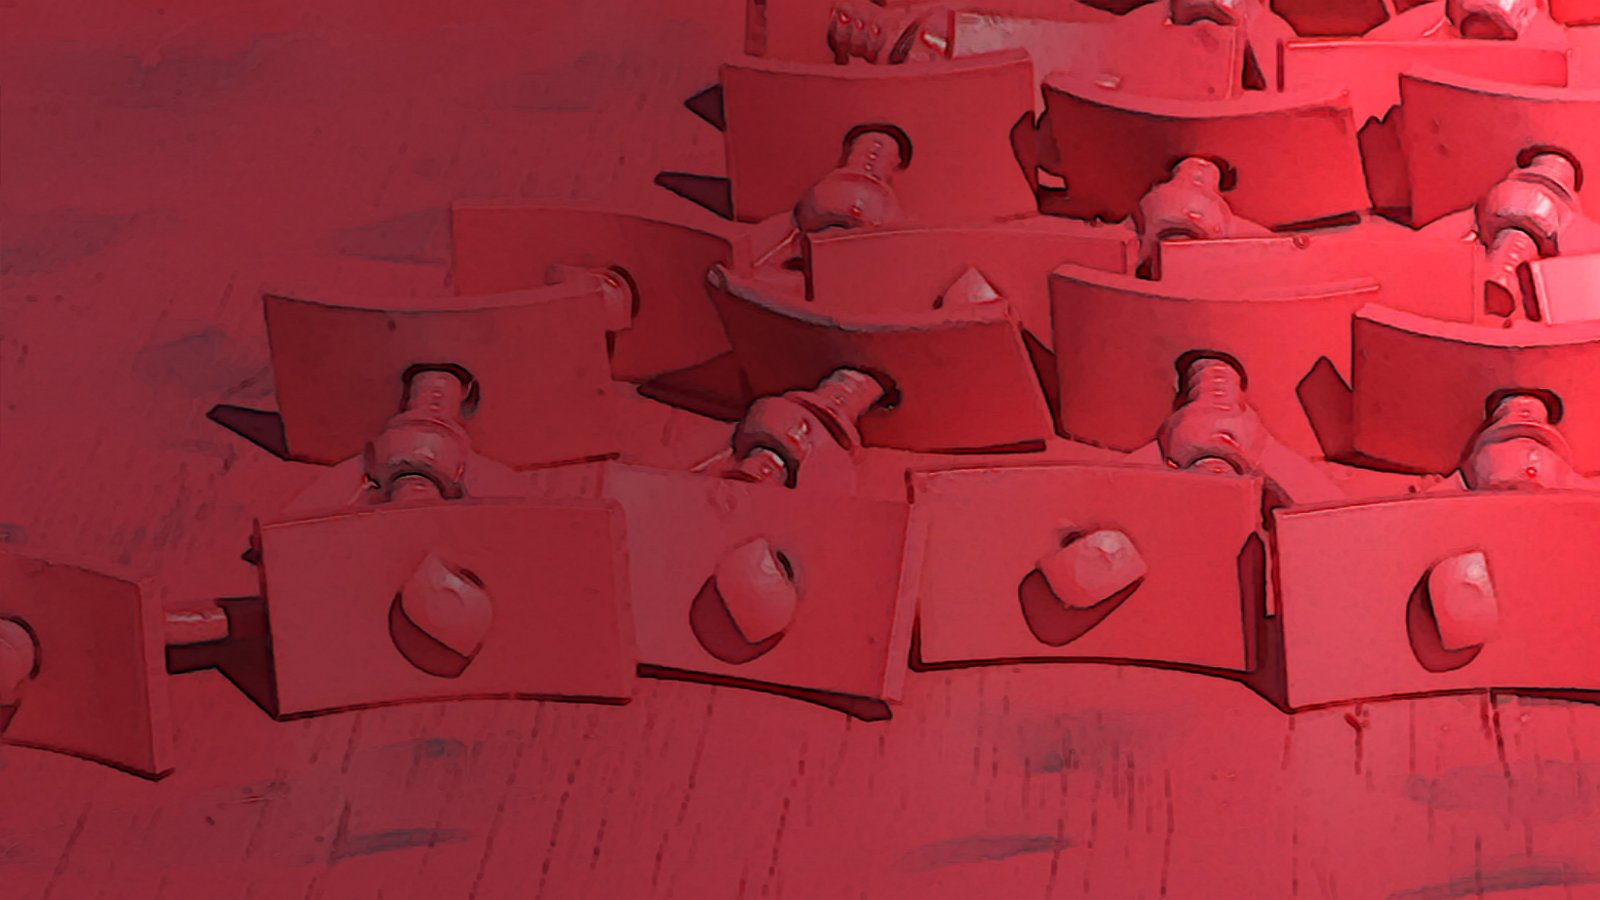 Red Clamps